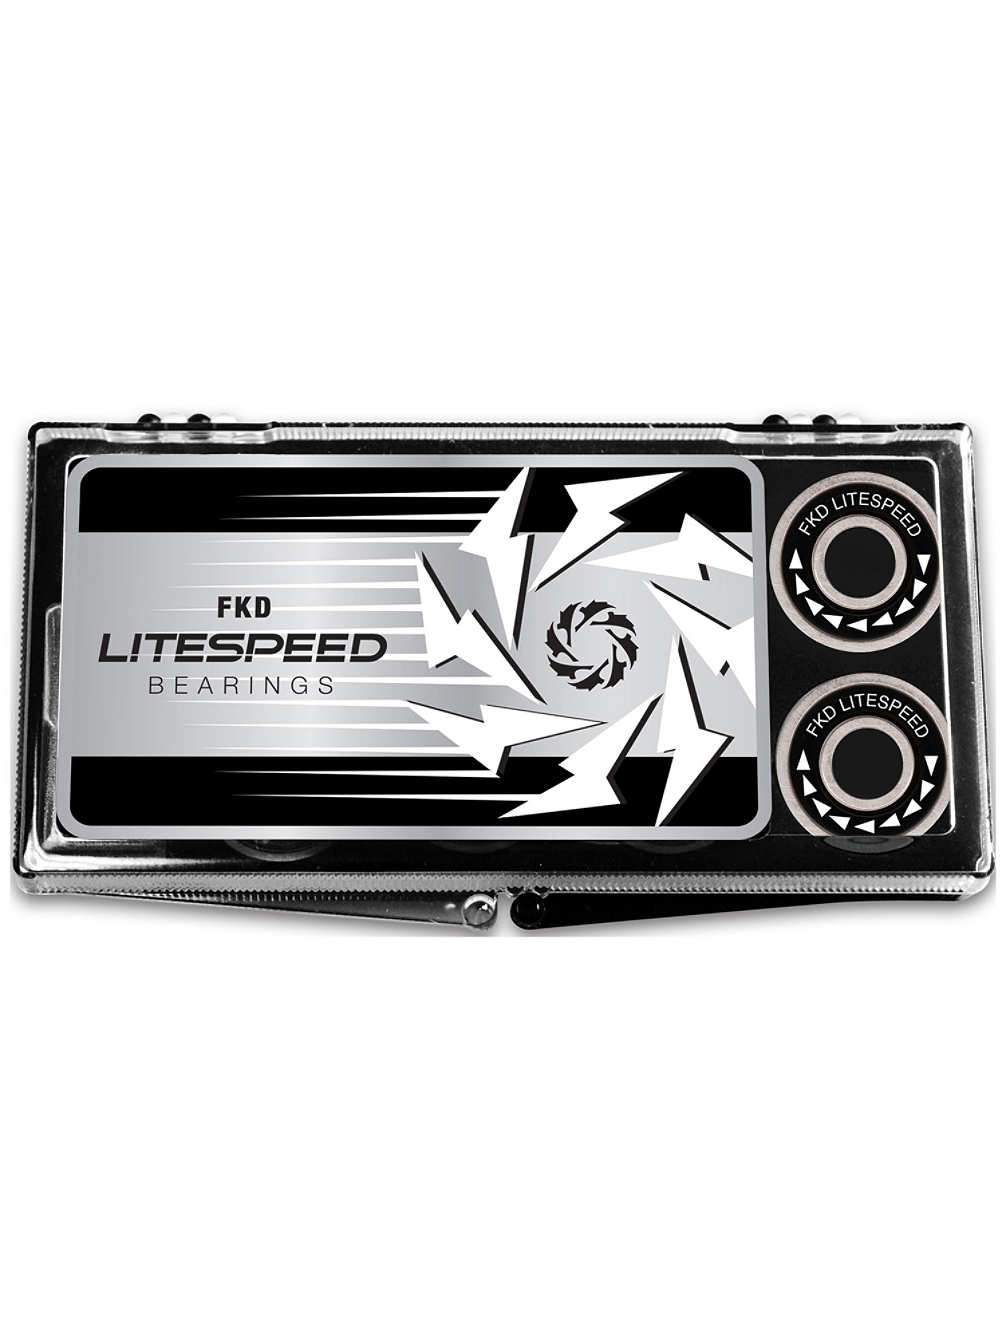 FKD Litespeed Bearings